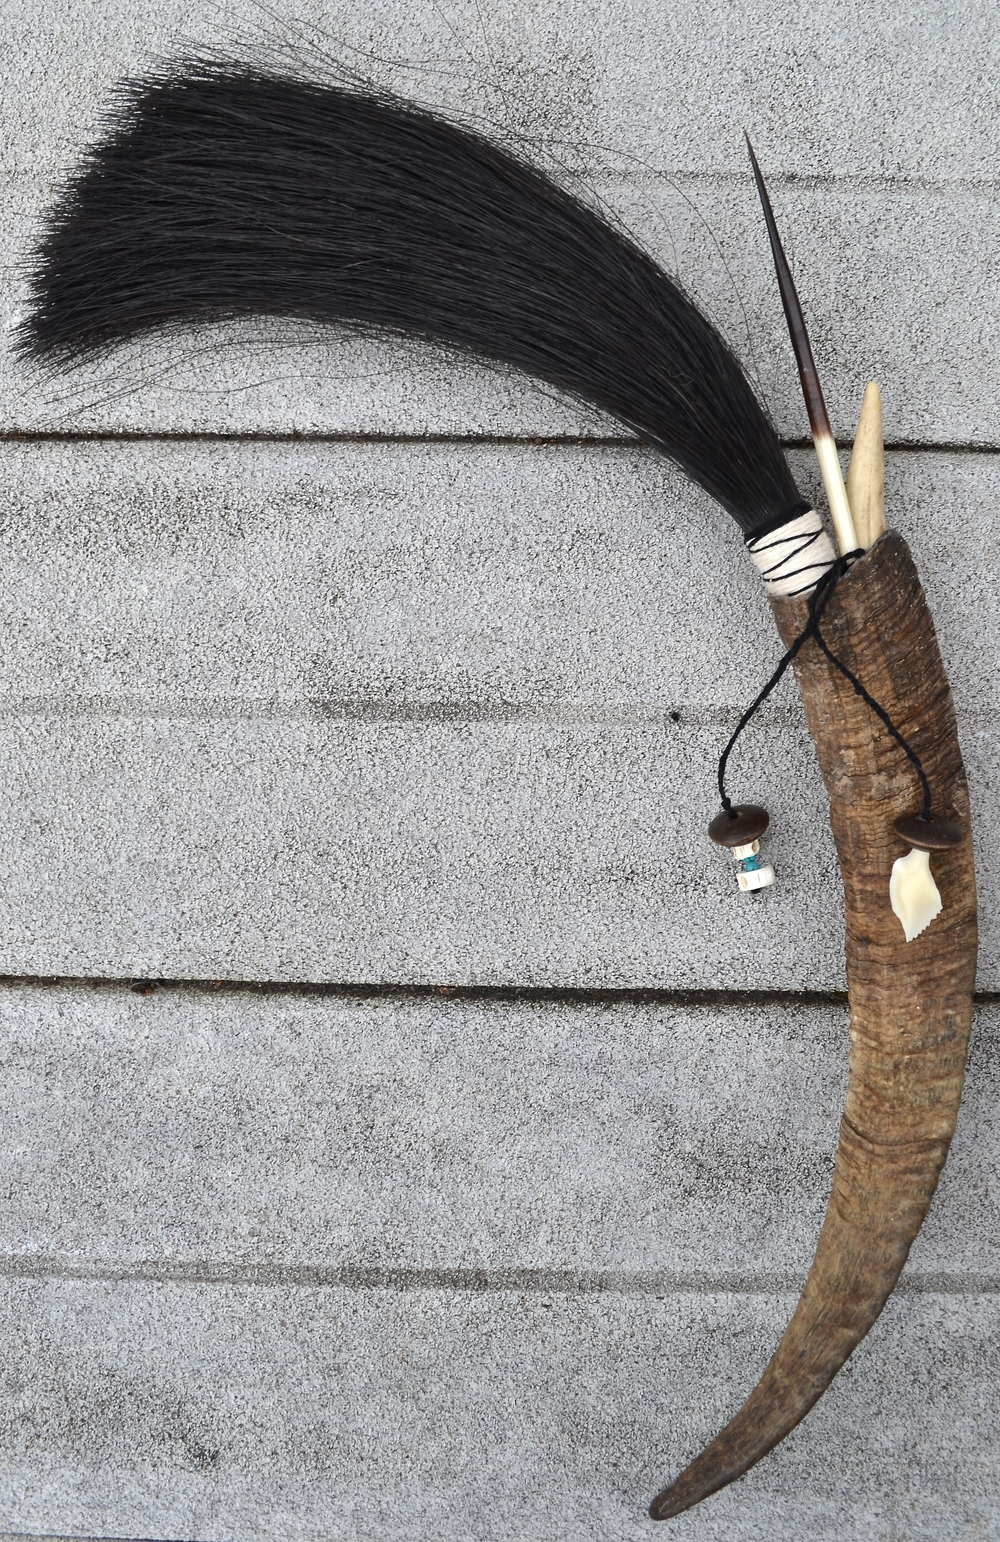 Goat horn, horse hair, twine, anger tip, porcupine quill, turquoise bead, wooden beadand Gar fish tooth and Shark vertebrae (2)  Artist made primal brush for use or display